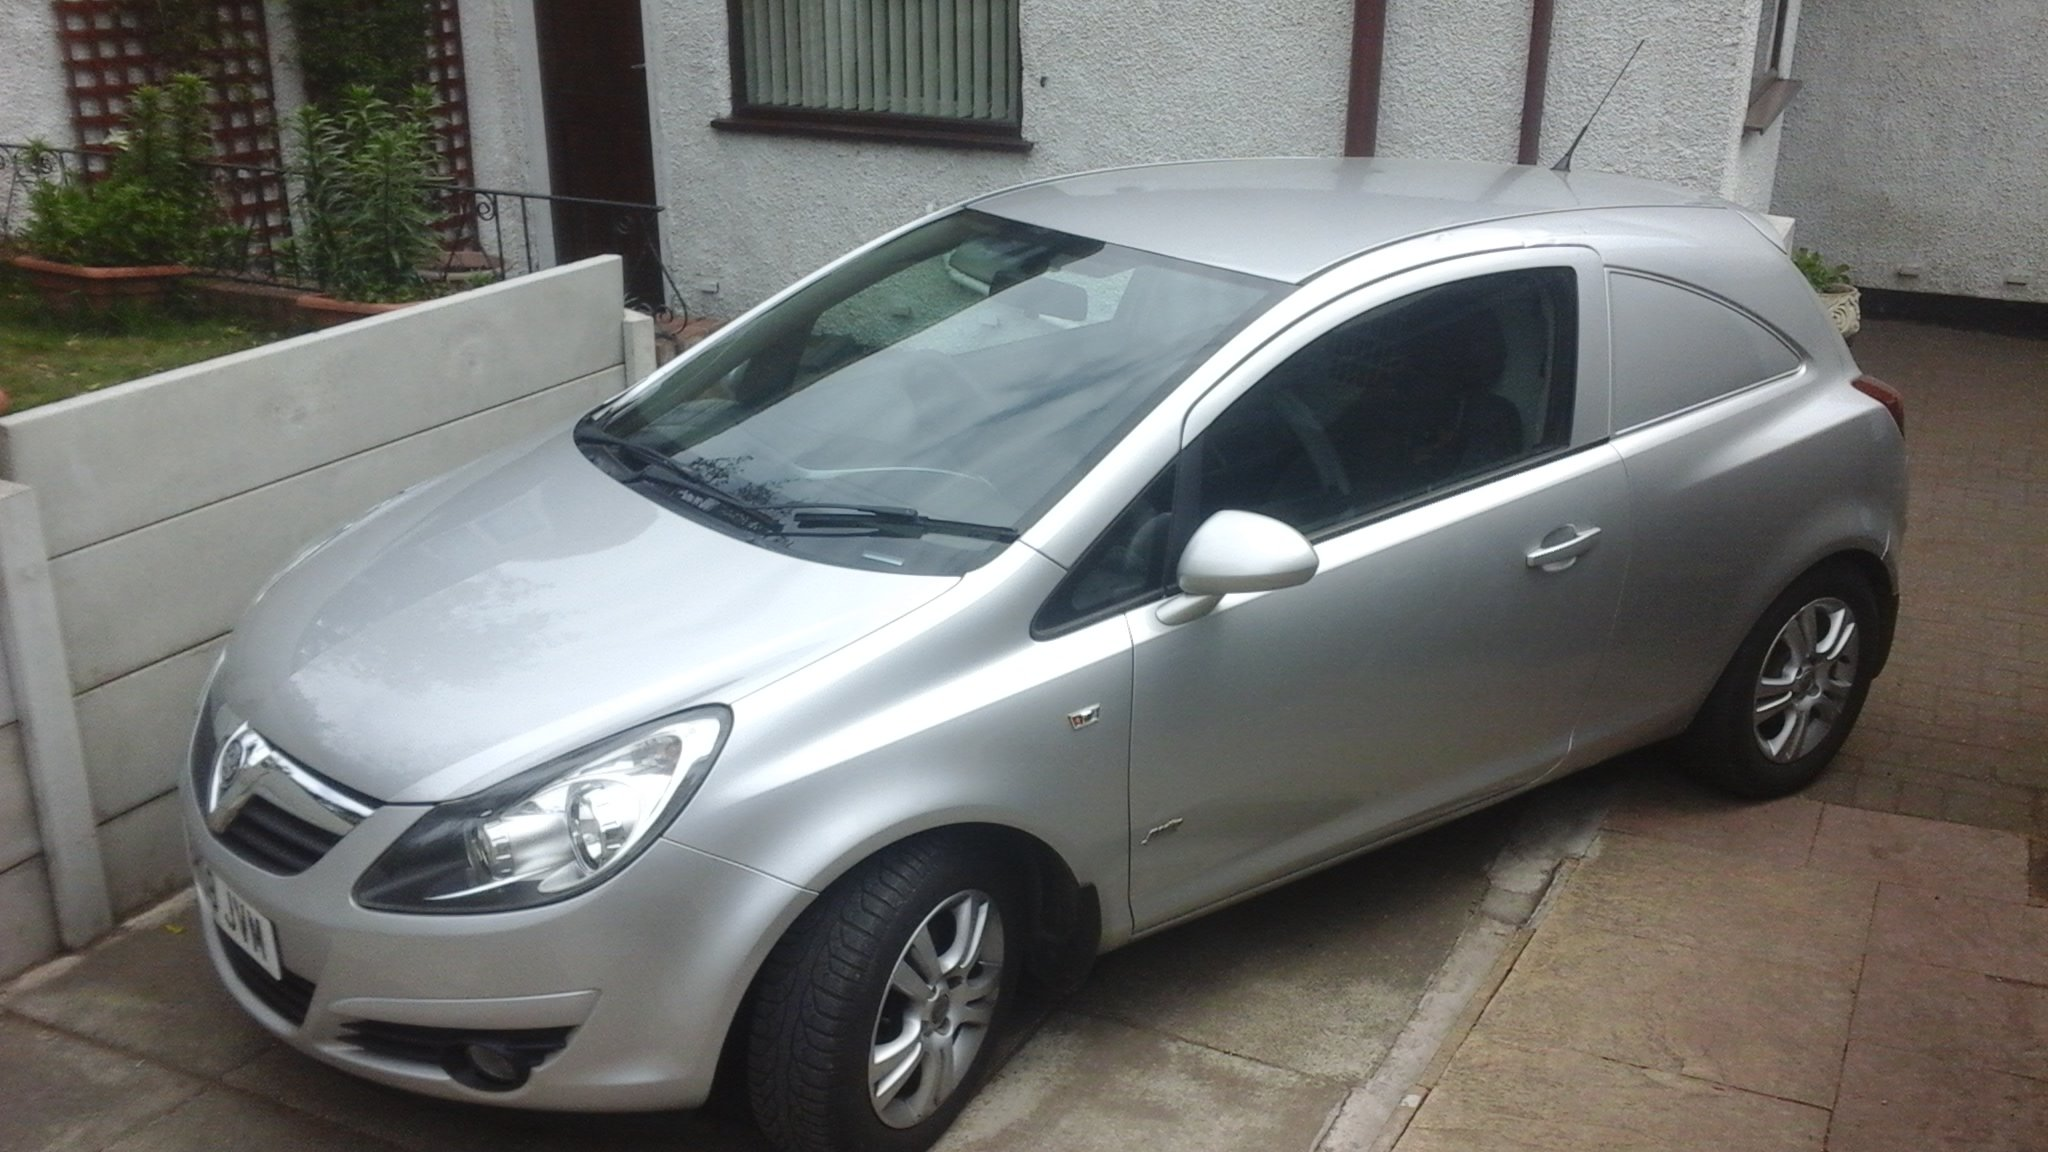 2008 Vauxhall corsa 1.3 cdti sportive For Sale (picture 1 of 6)